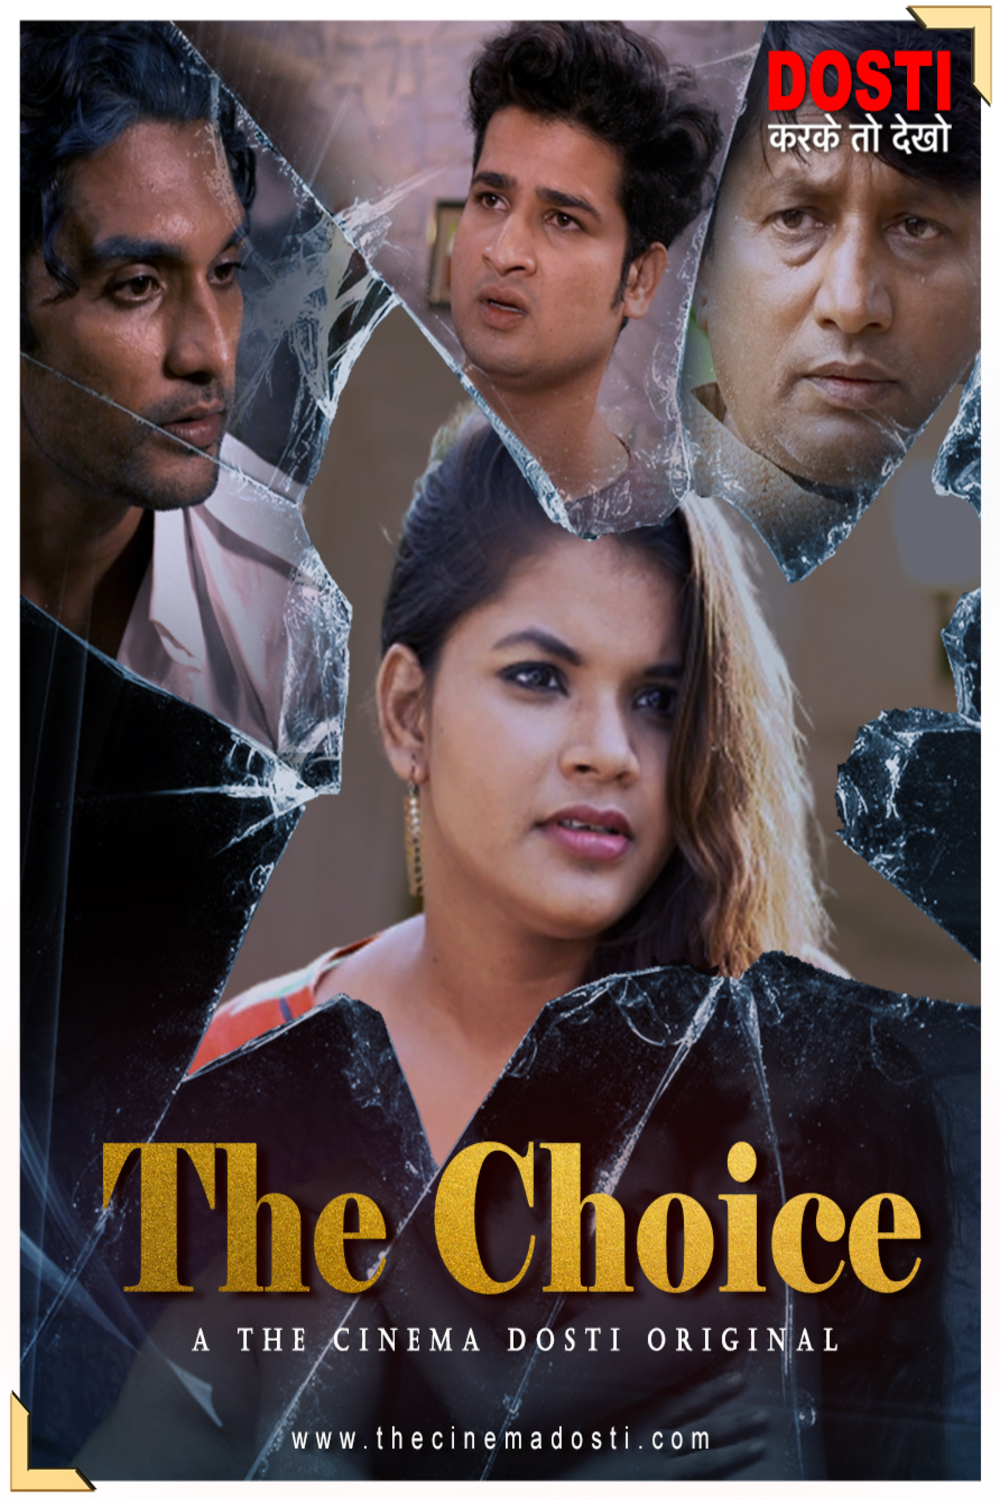 The Choice 2020 CinemaDosti Originals Hindi Short Film 720p HDRip 200MB Download